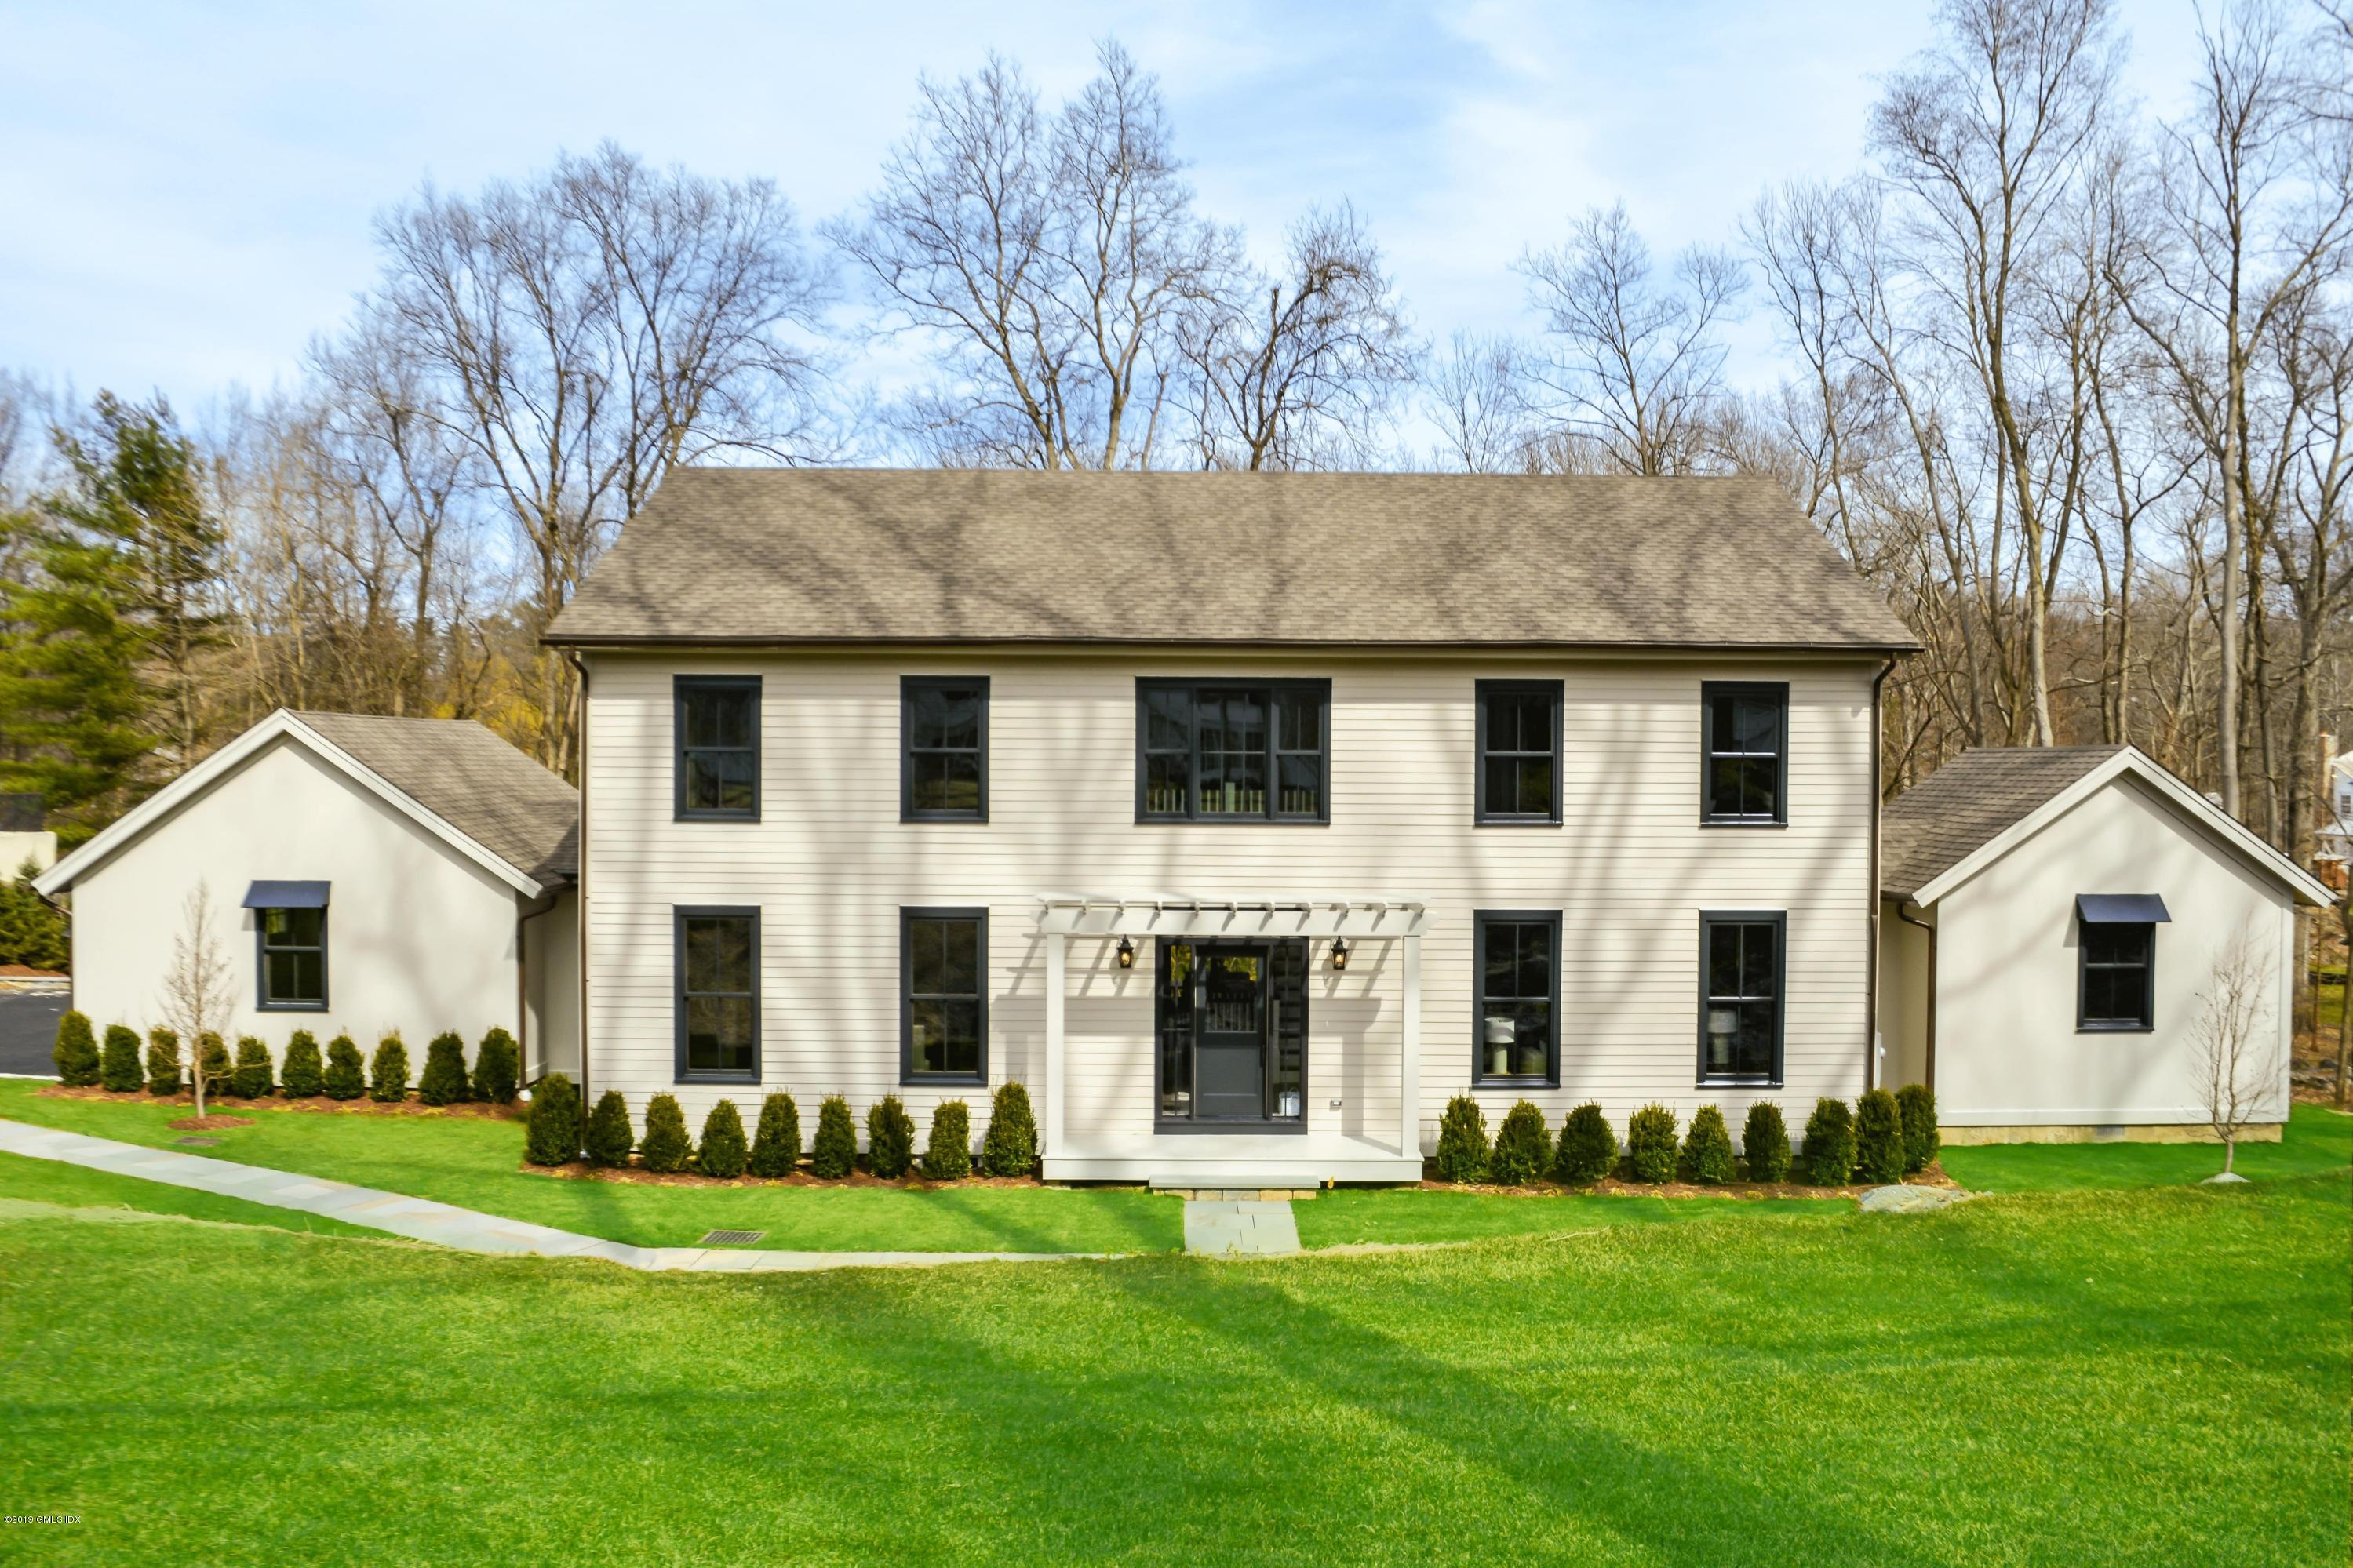 73 Sawmill Lane,Greenwich,Connecticut 06830,5 Bedrooms Bedrooms,4 BathroomsBathrooms,Single family,Sawmill,105261